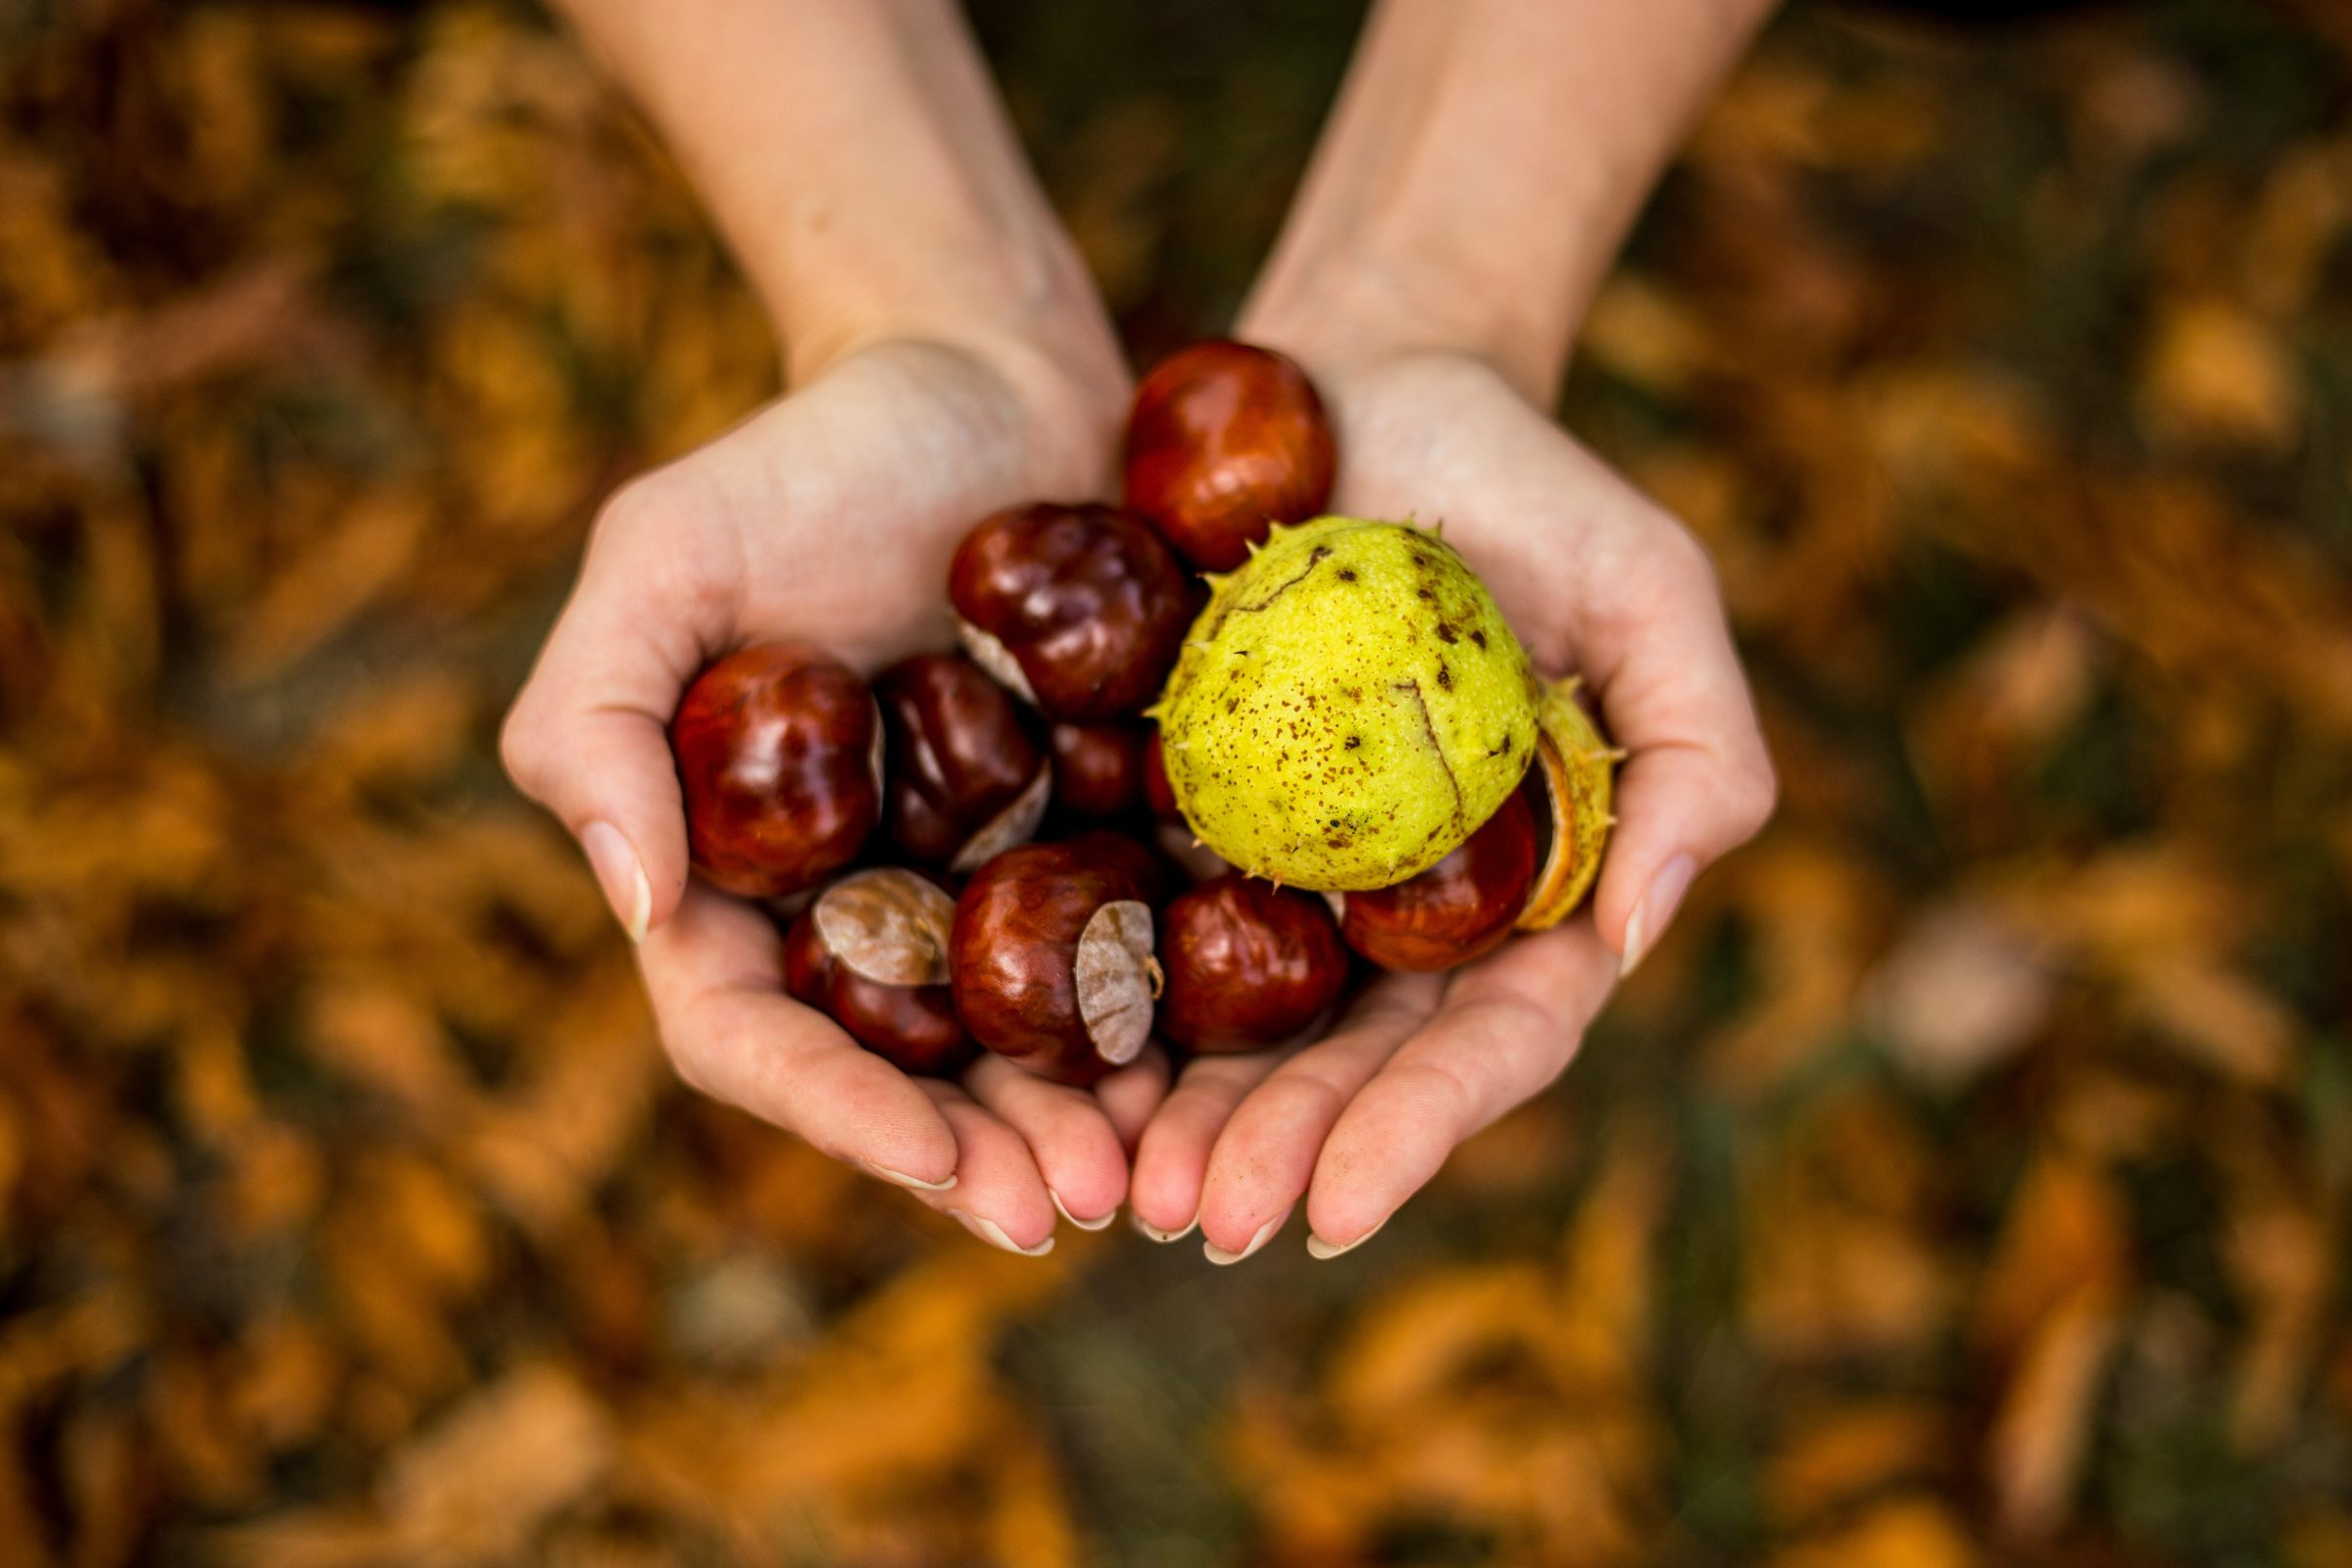 Chestnuts against a backdrop of autumn leaves